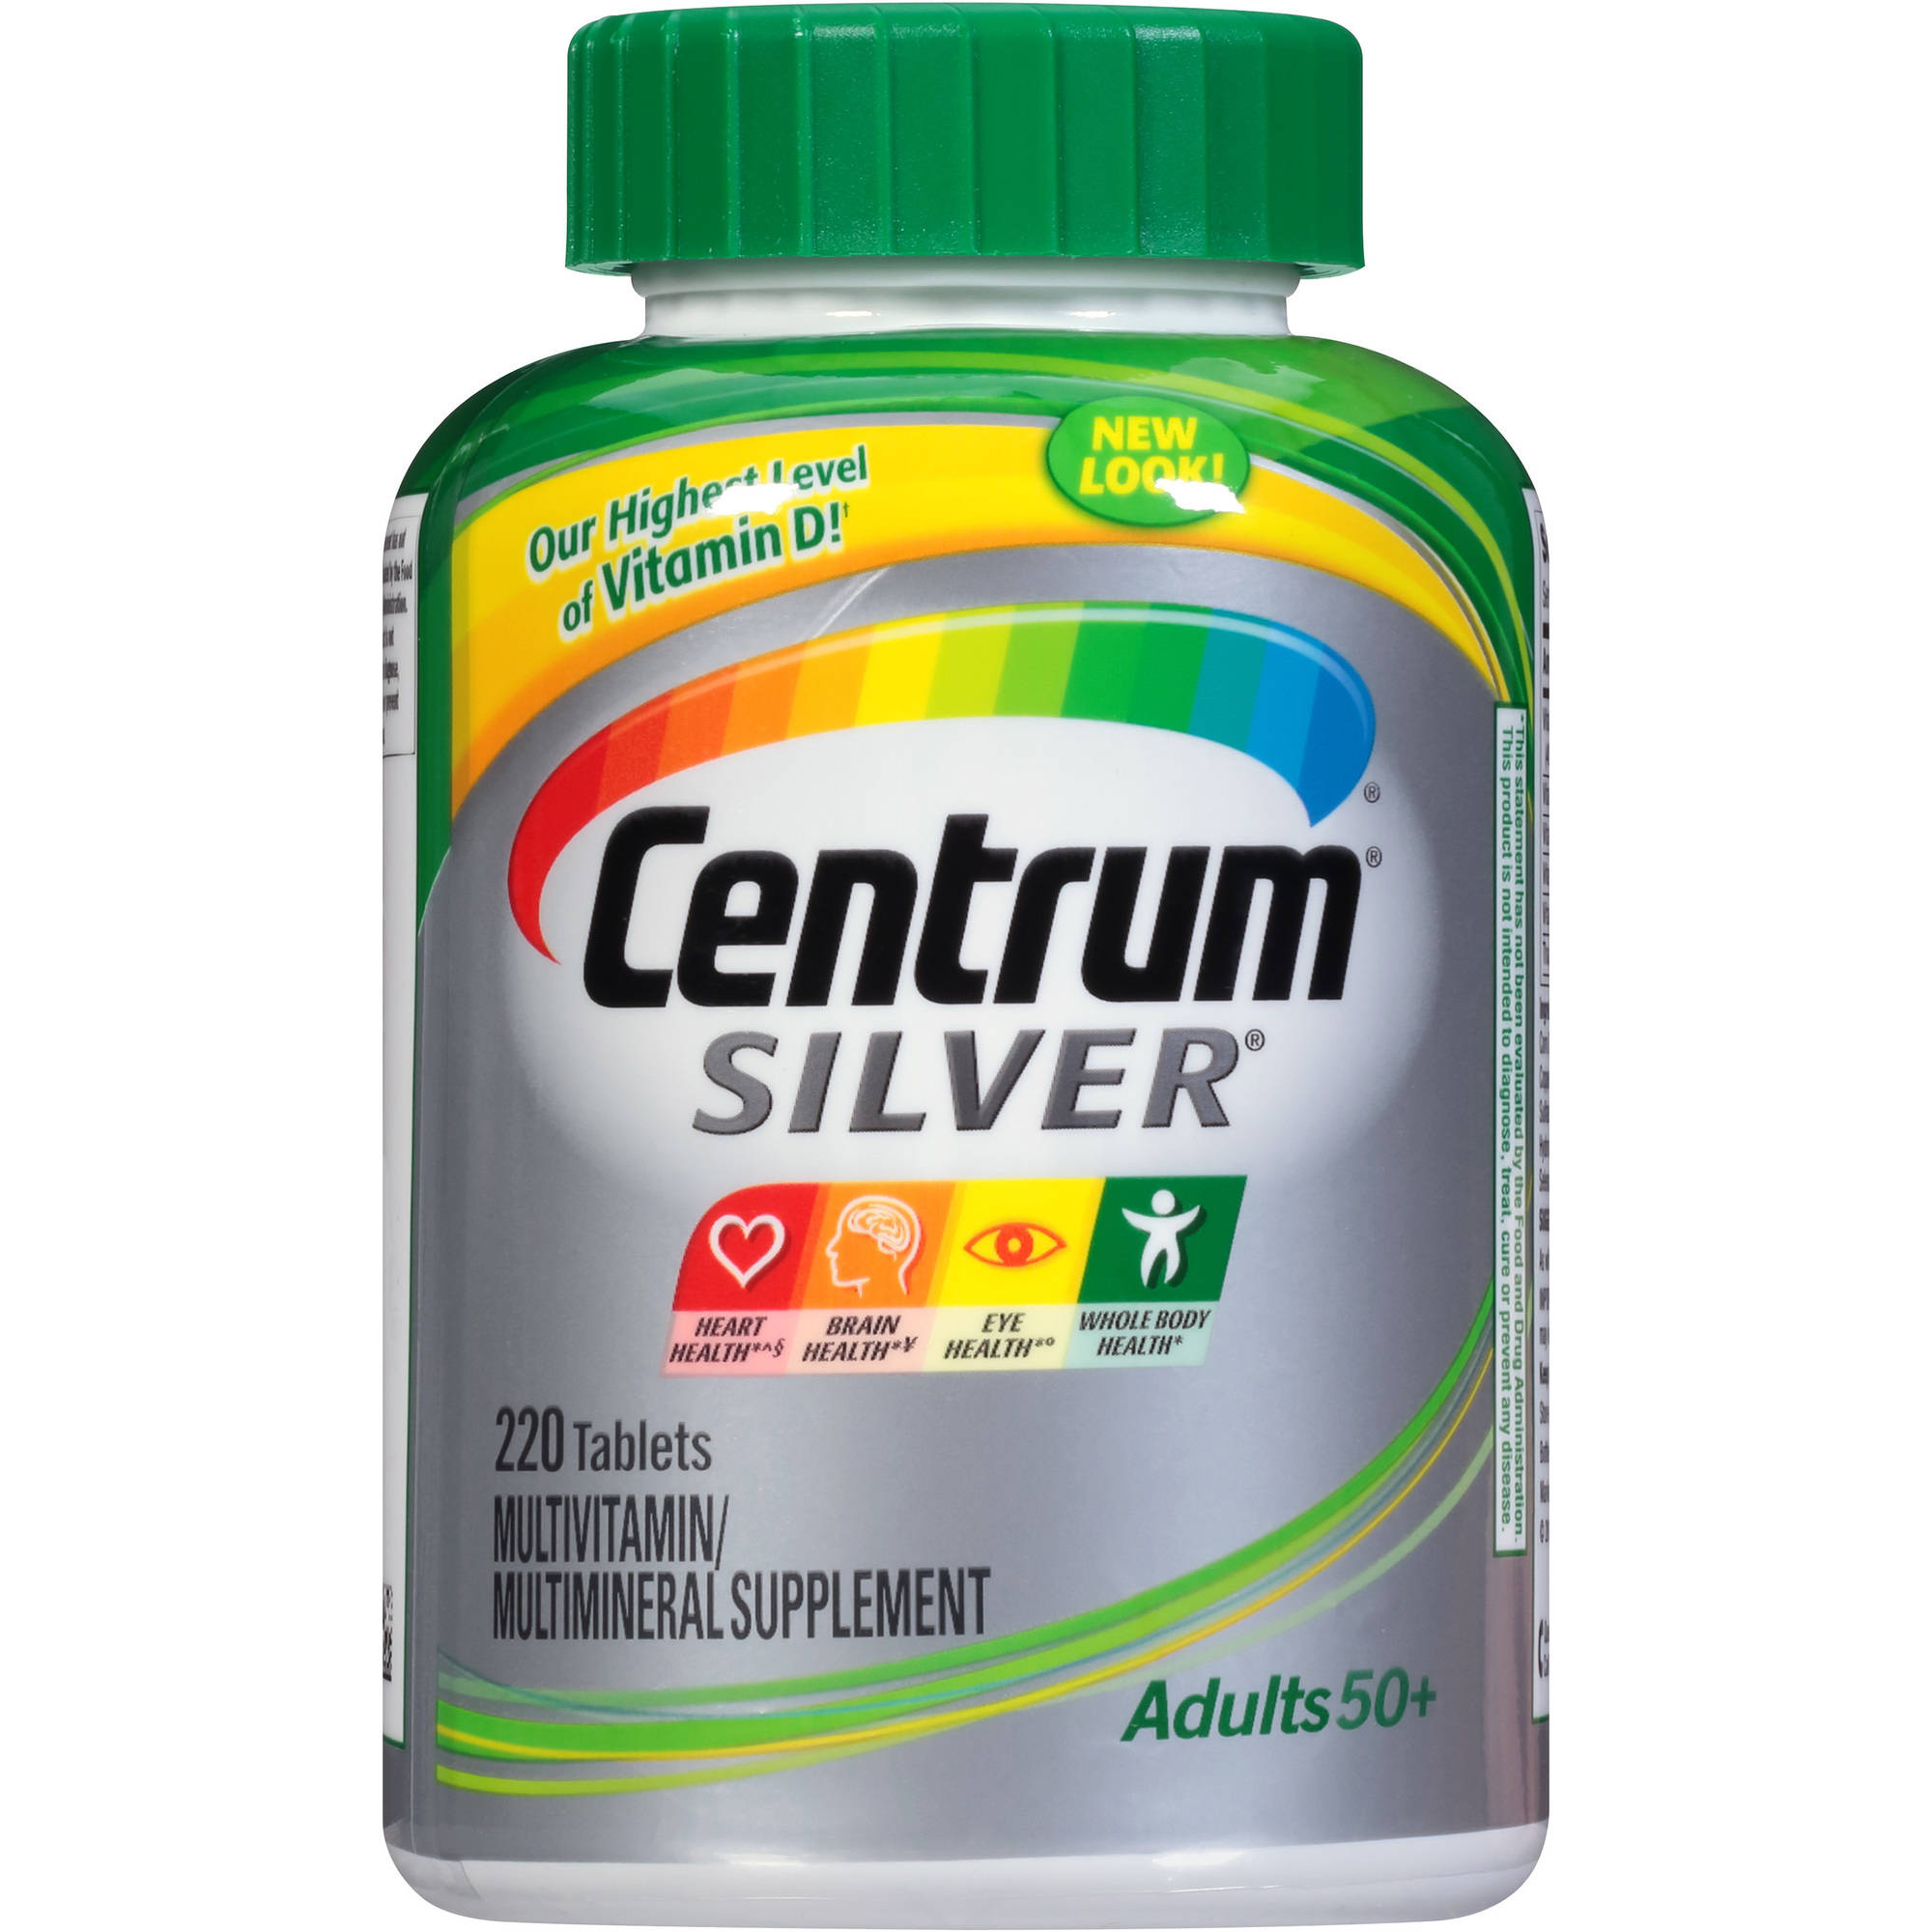 Centrum Silver Adult Multivitamin/Multimineral Supplement 220 Count